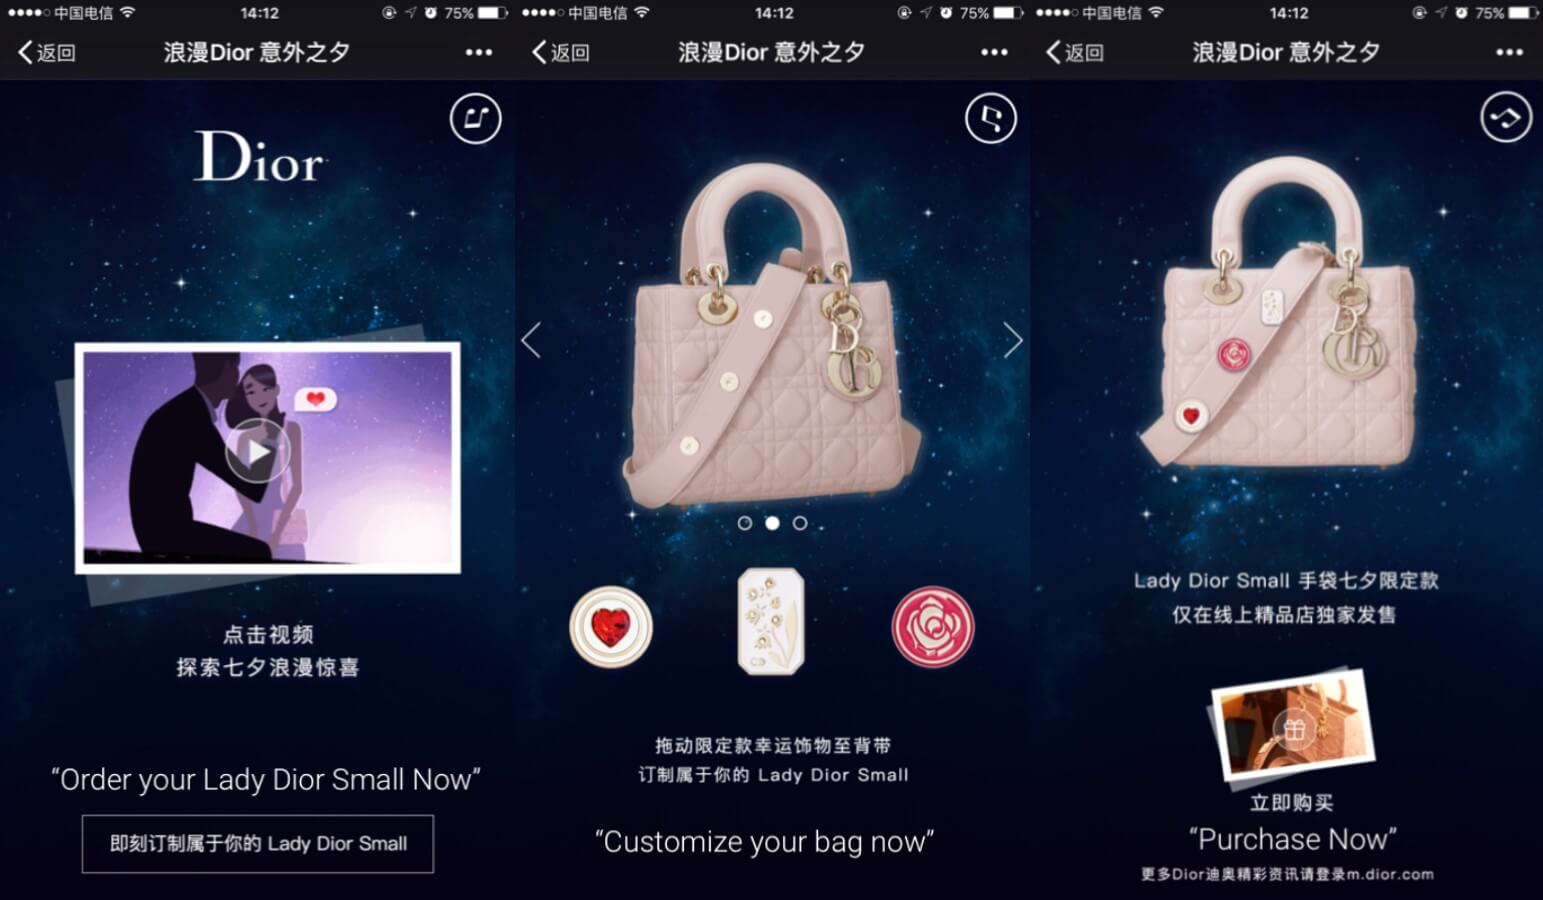 Personalization and customization are great marketing trends in the Asia Pacific.